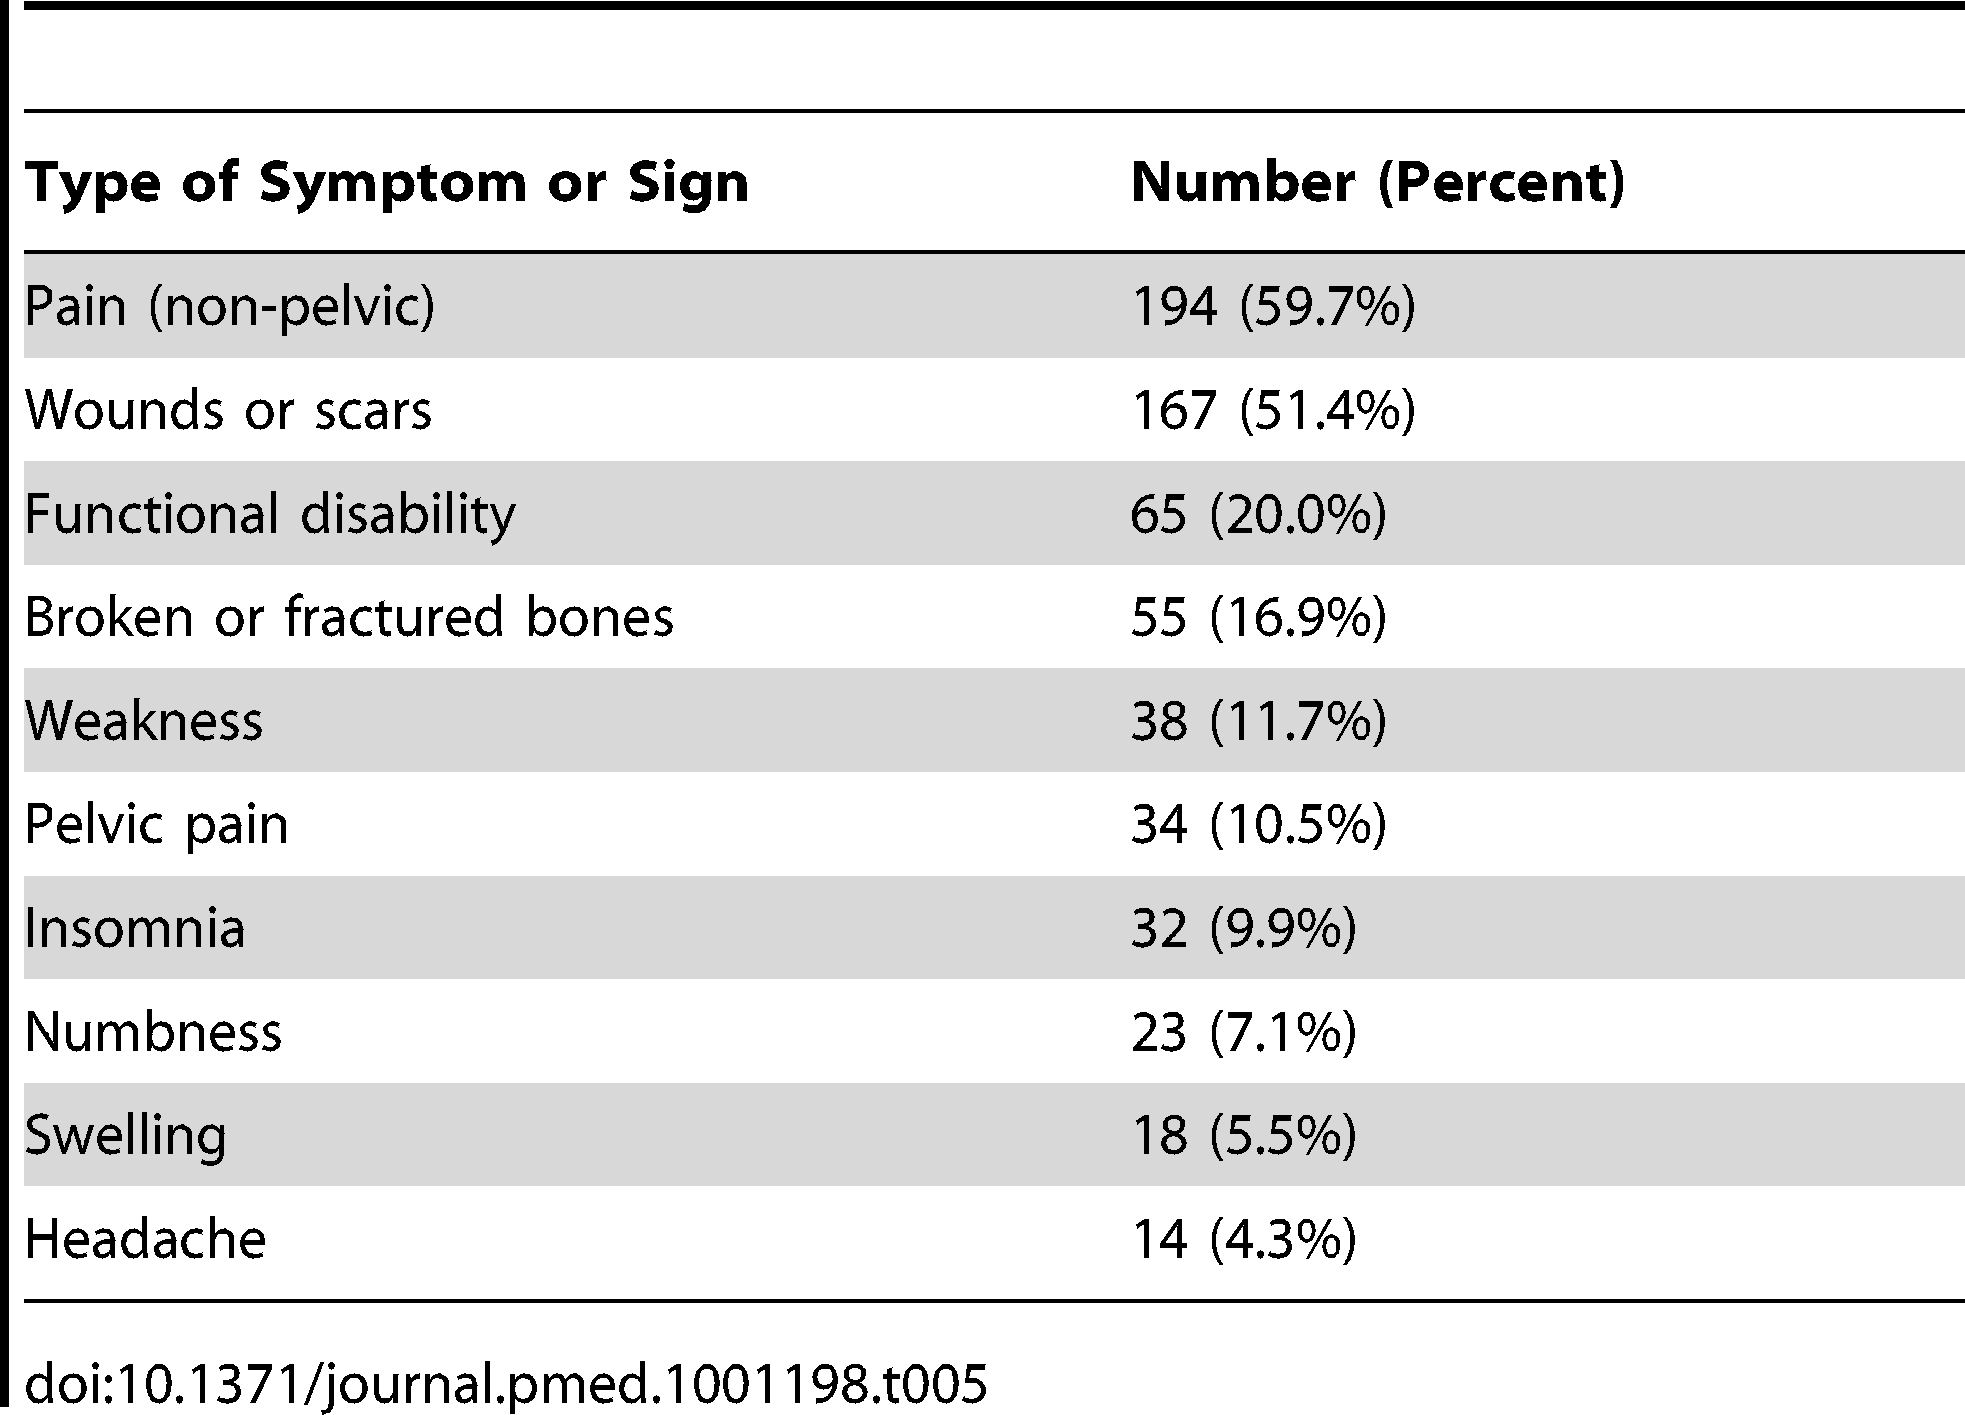 Common symptoms and signs documented in patient medical records.